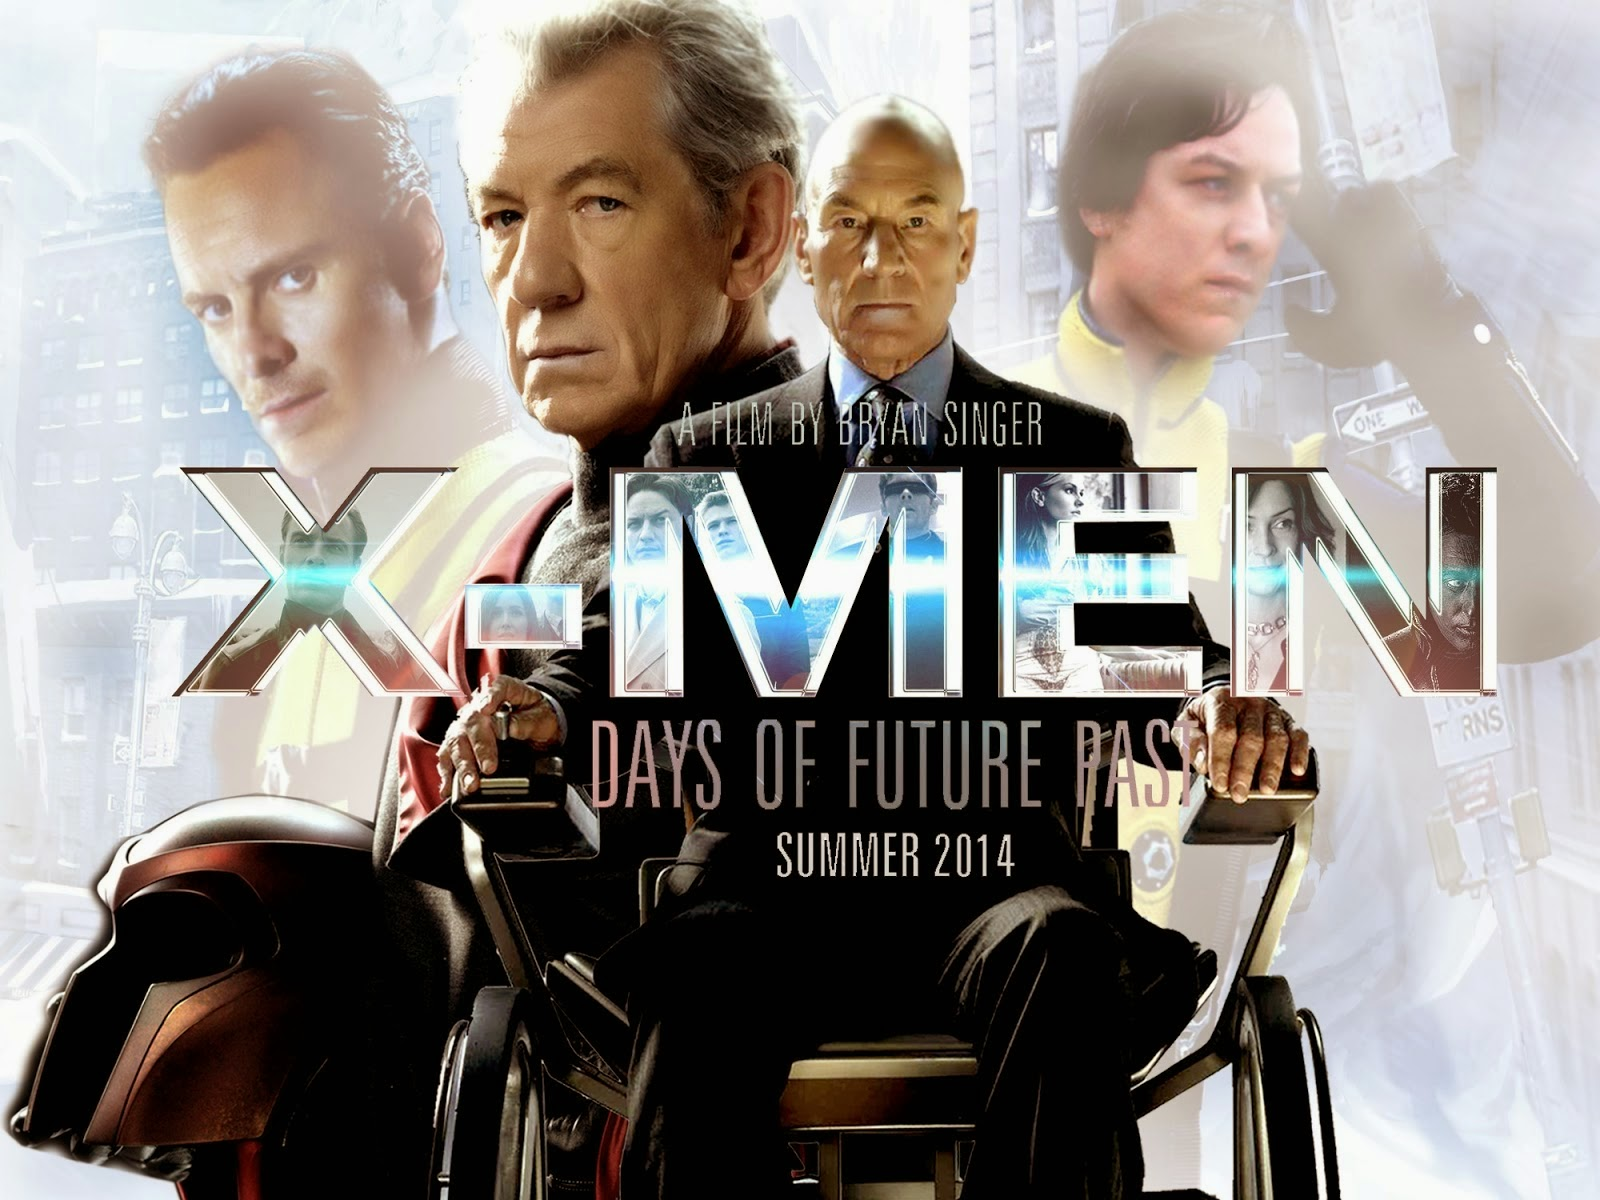 Top Artis New Posters Wallpaper X Men Days Of Future Past In Hd 2014